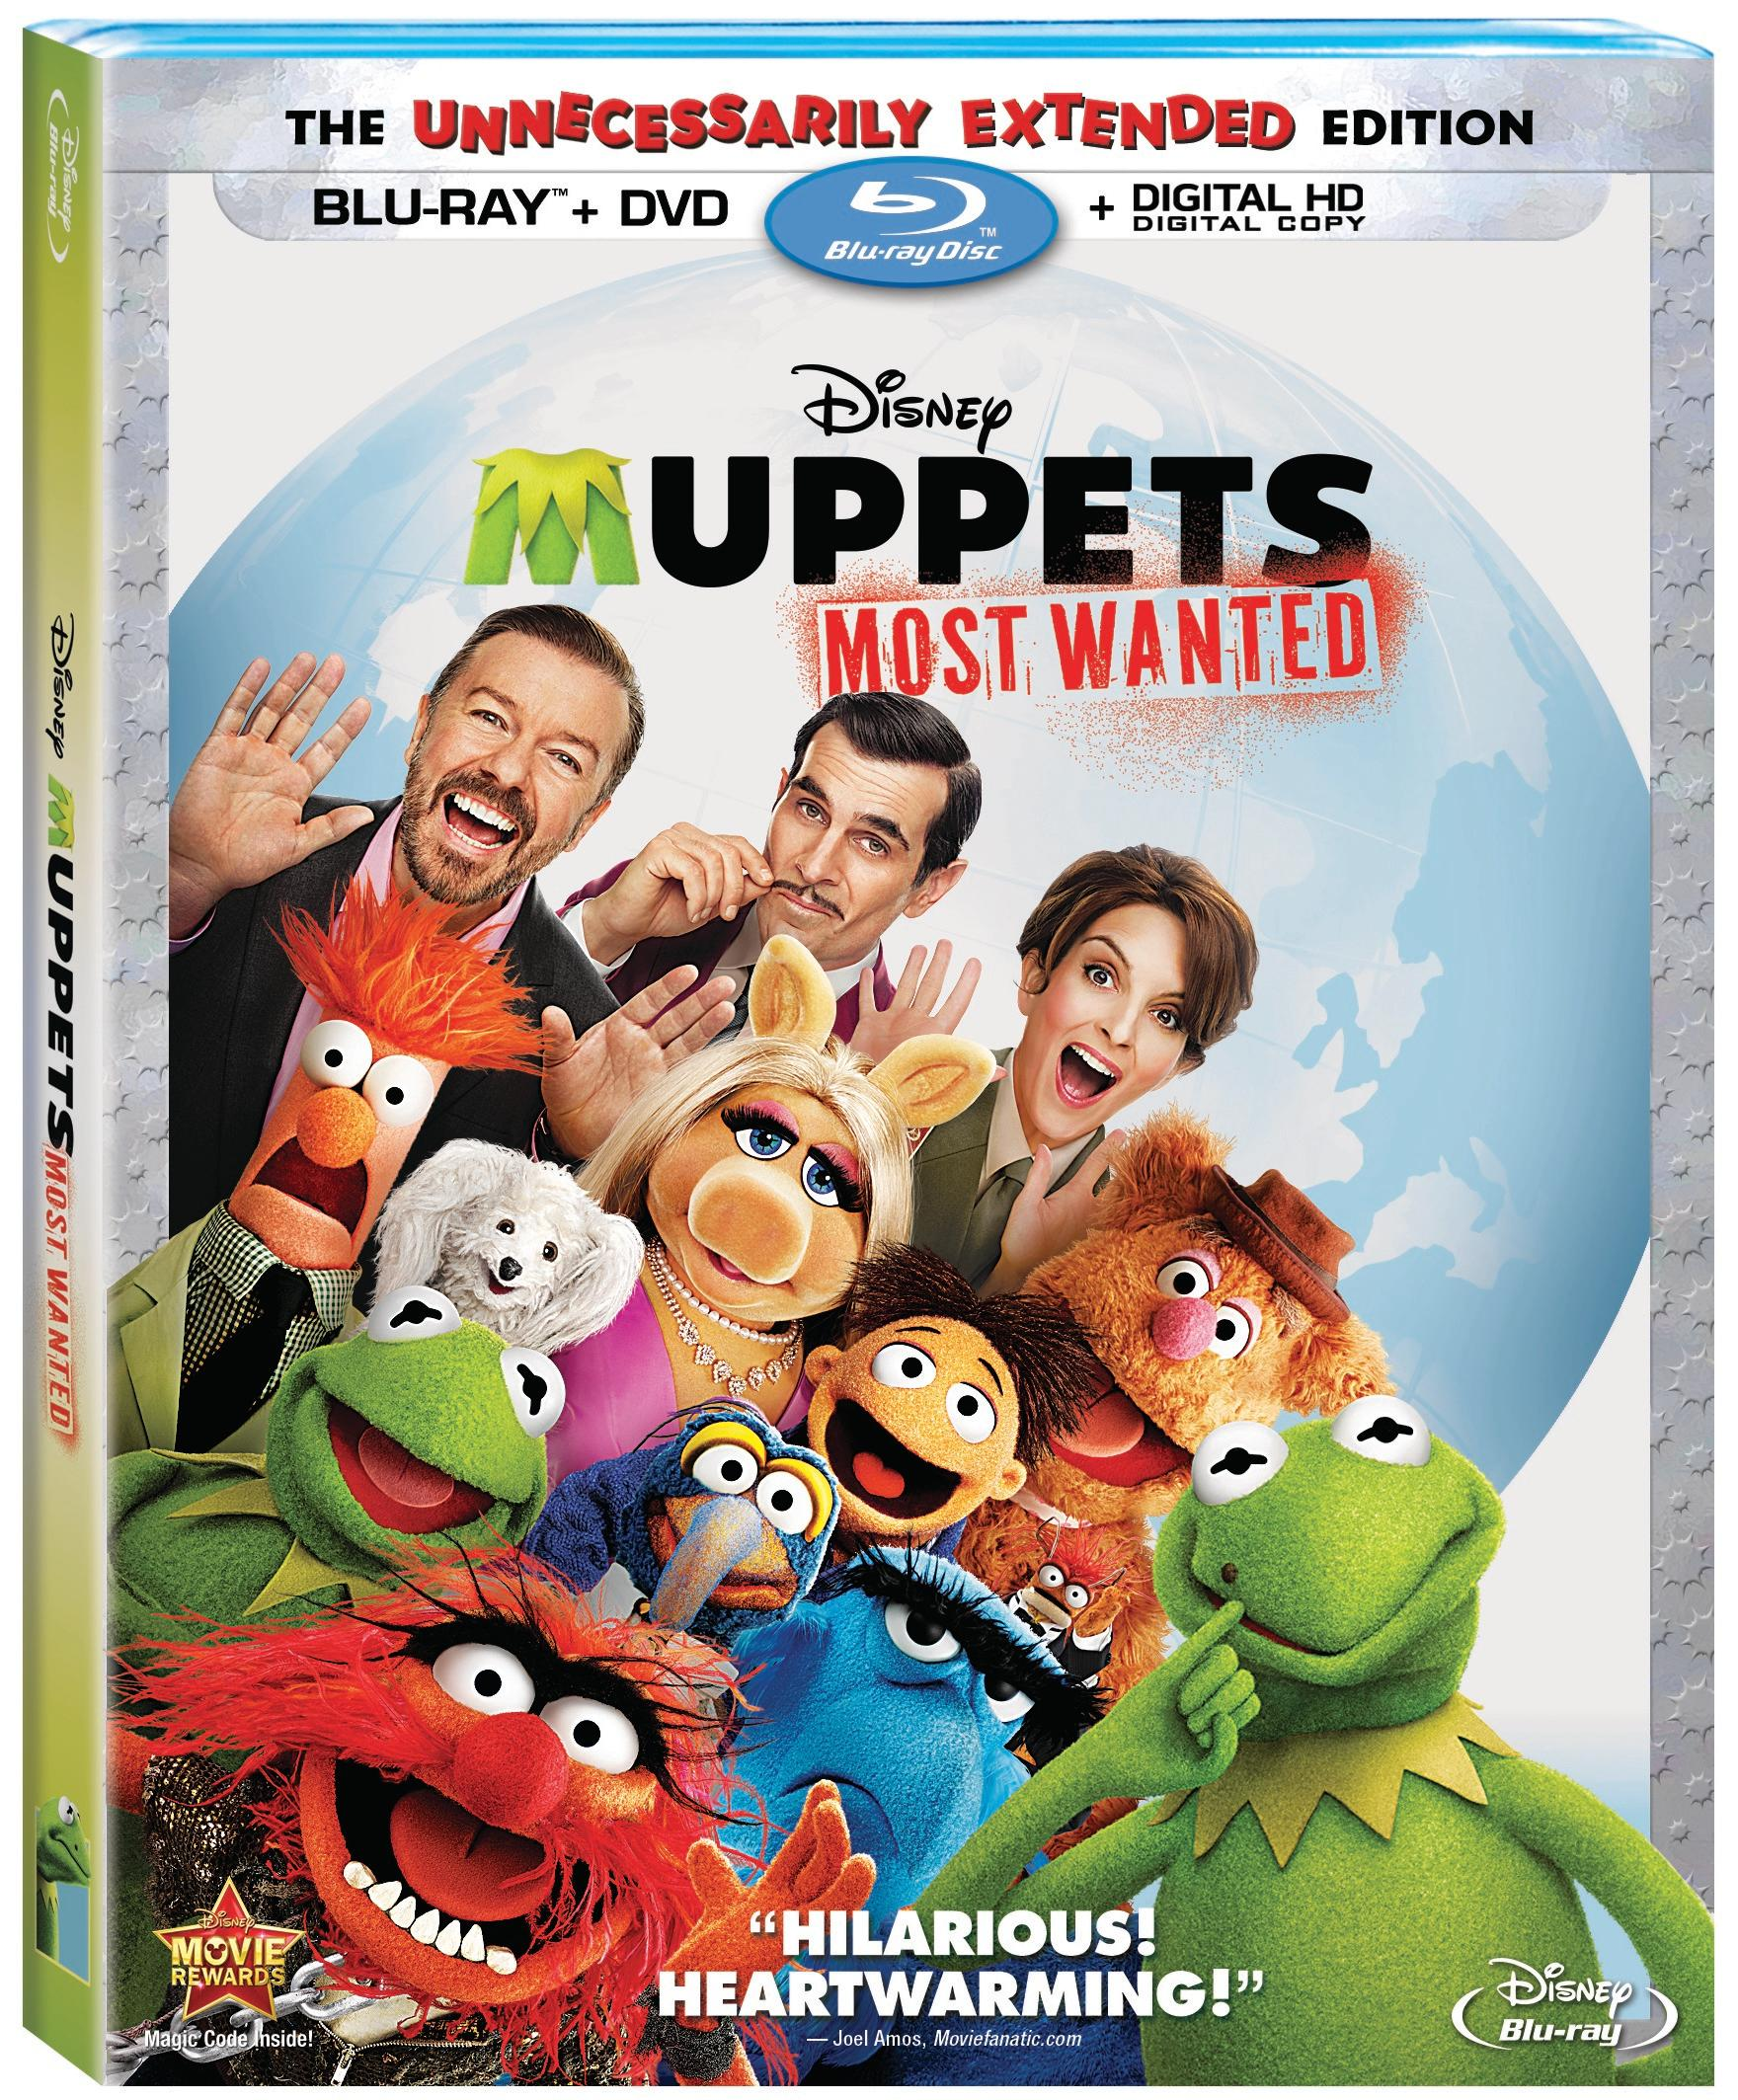 Muppets Most Wanted Blu-ray Review